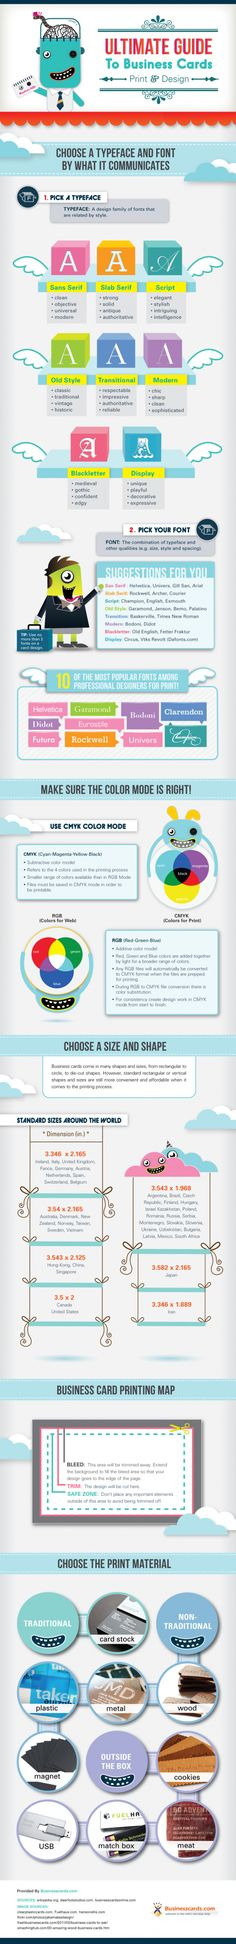 Business card guide